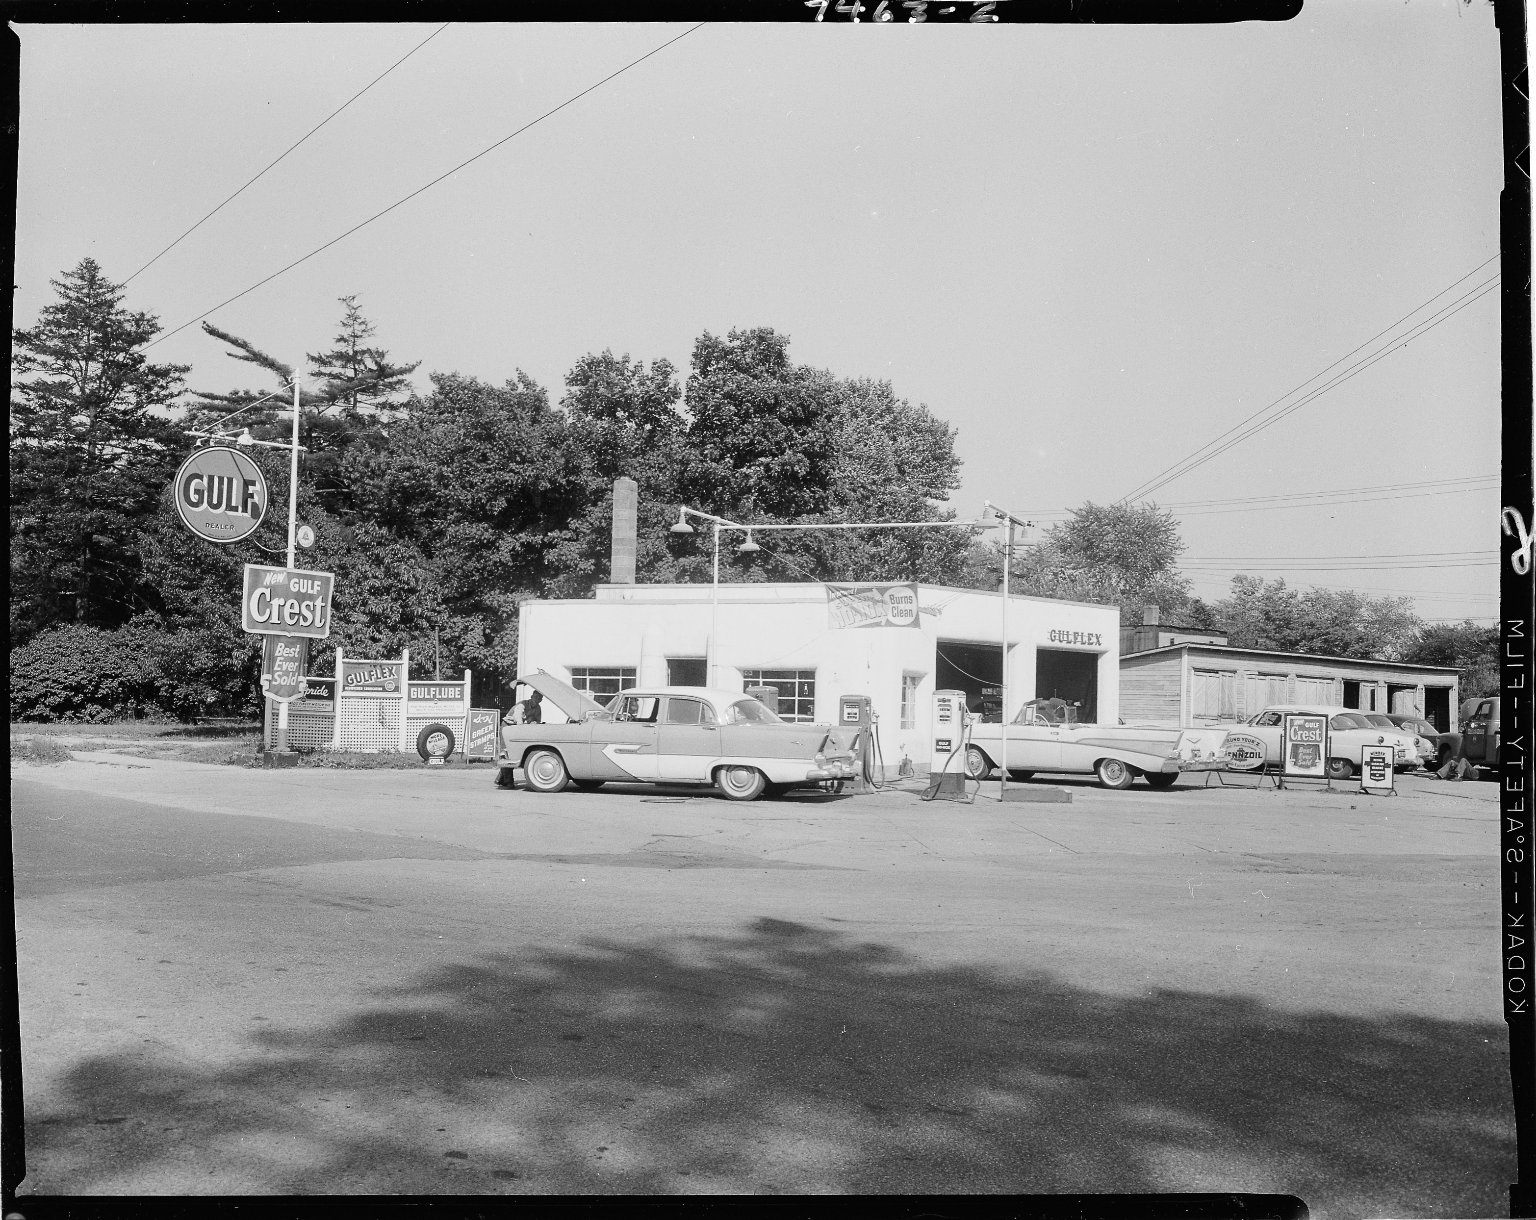 Gulf Service Station, Roelof Brothers, owners, exterior